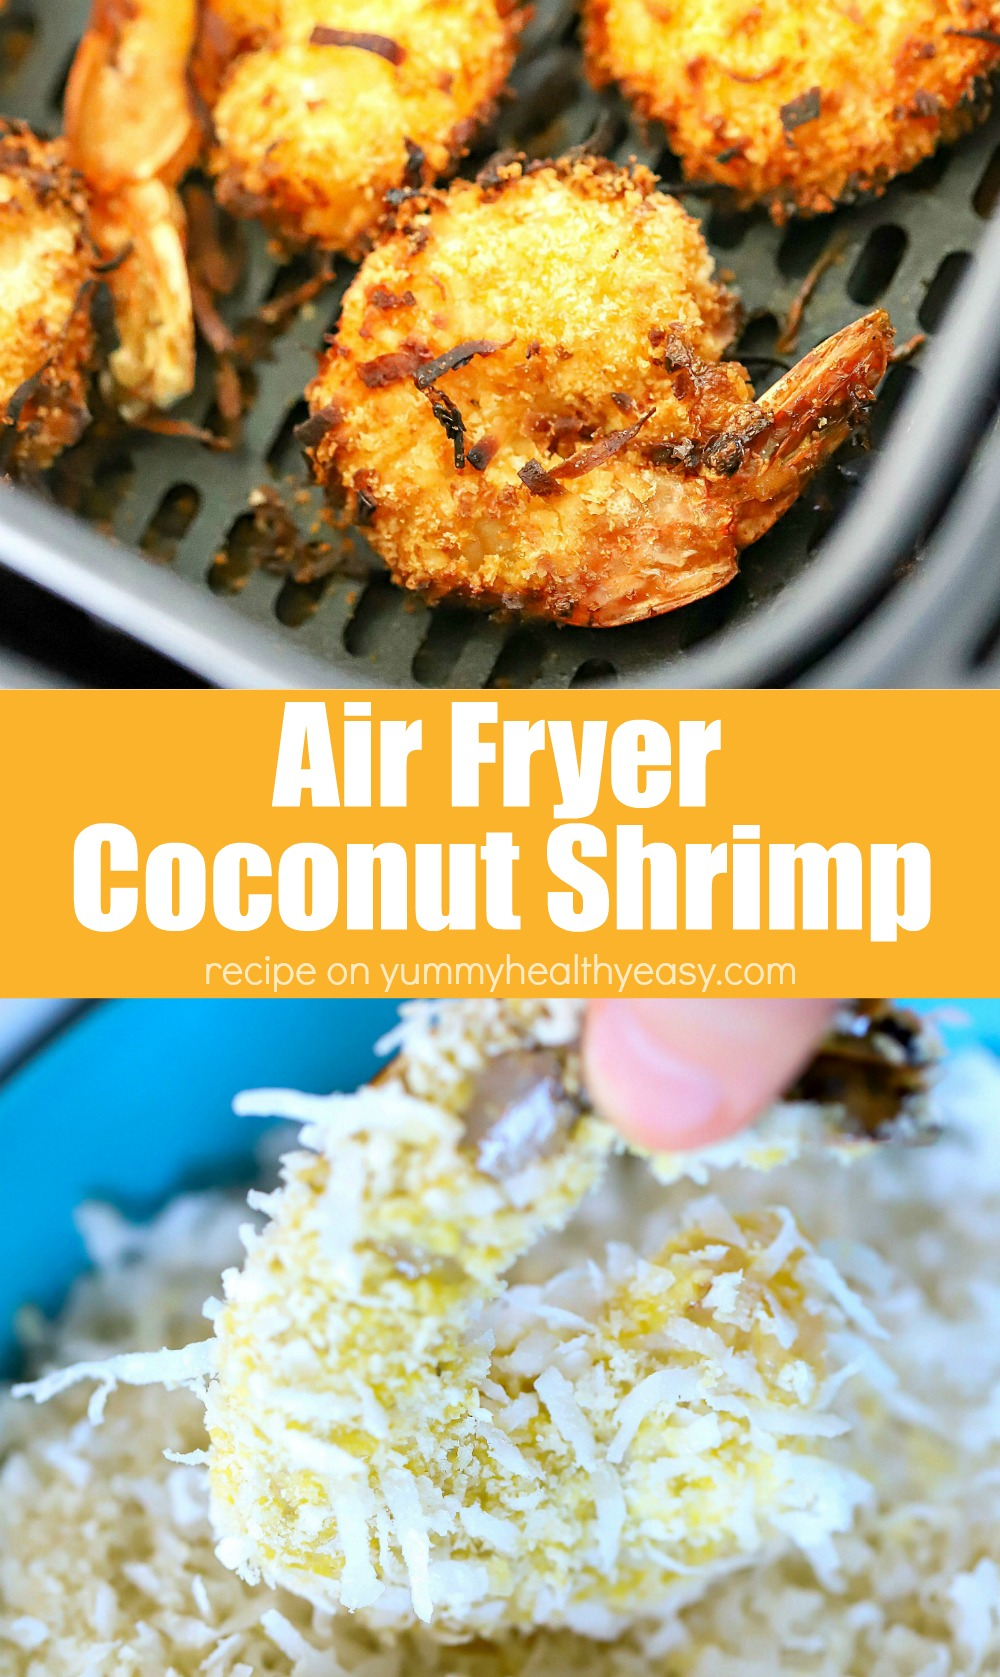 Need a fun and healthier appetizer? Make this Air Fryer Coconut Shrimp Recipe! It's an easy recipe that's cooked in the air fryer - not oil - so it saves calories but still tastes absolutely amazing! It's so easy to make! #airfryer #shrimp #coconutshrimp #appetizer #yummyfood #yummyhealthyeasy #healthyrecipes #deliciousrecipes #easyrecipe #funtomake #recipe via @jennikolaus